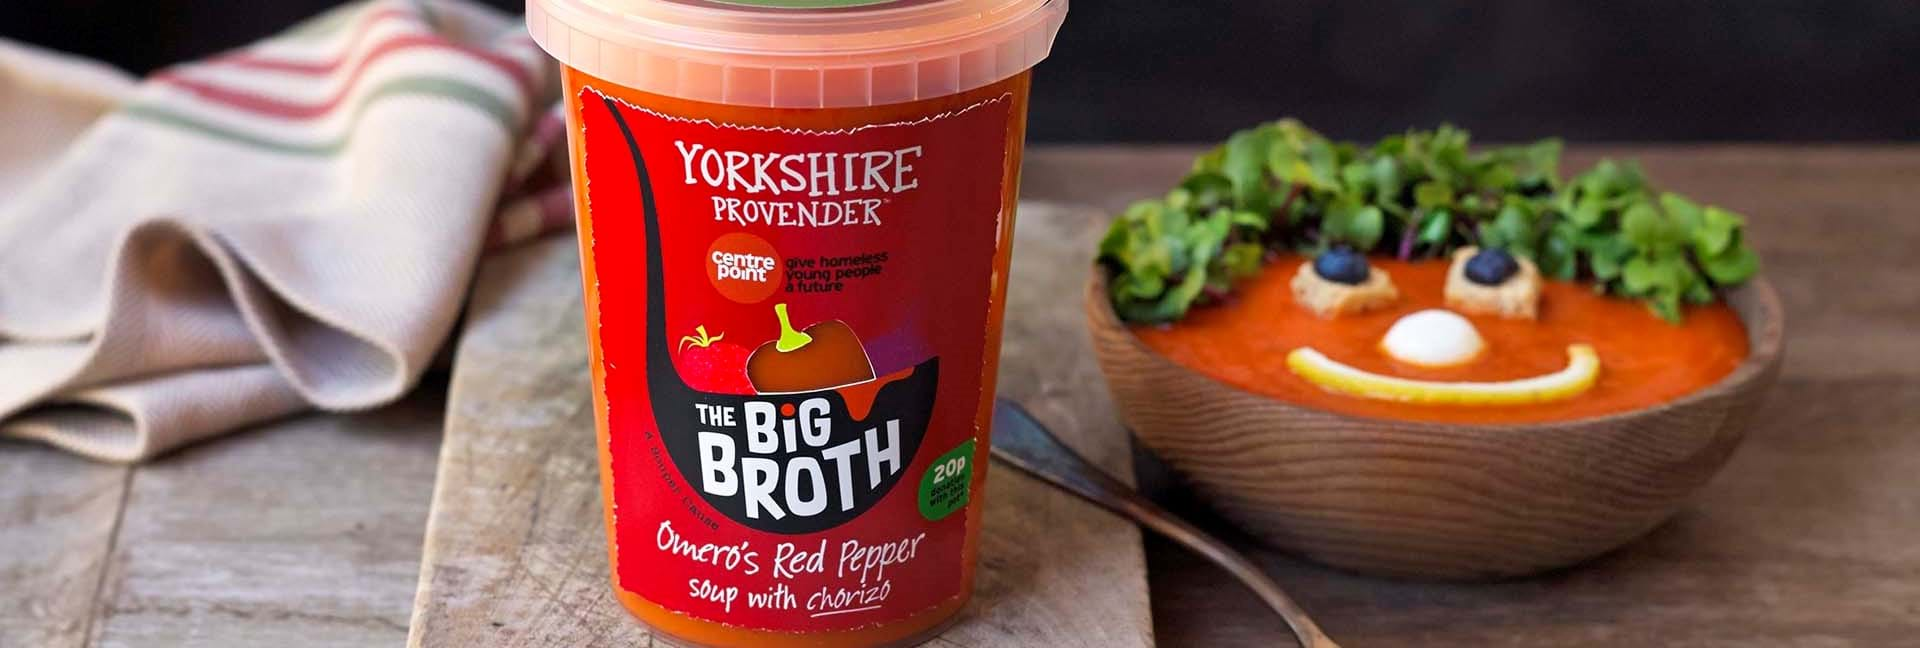 Yorkshire Provender's Big Broth soup